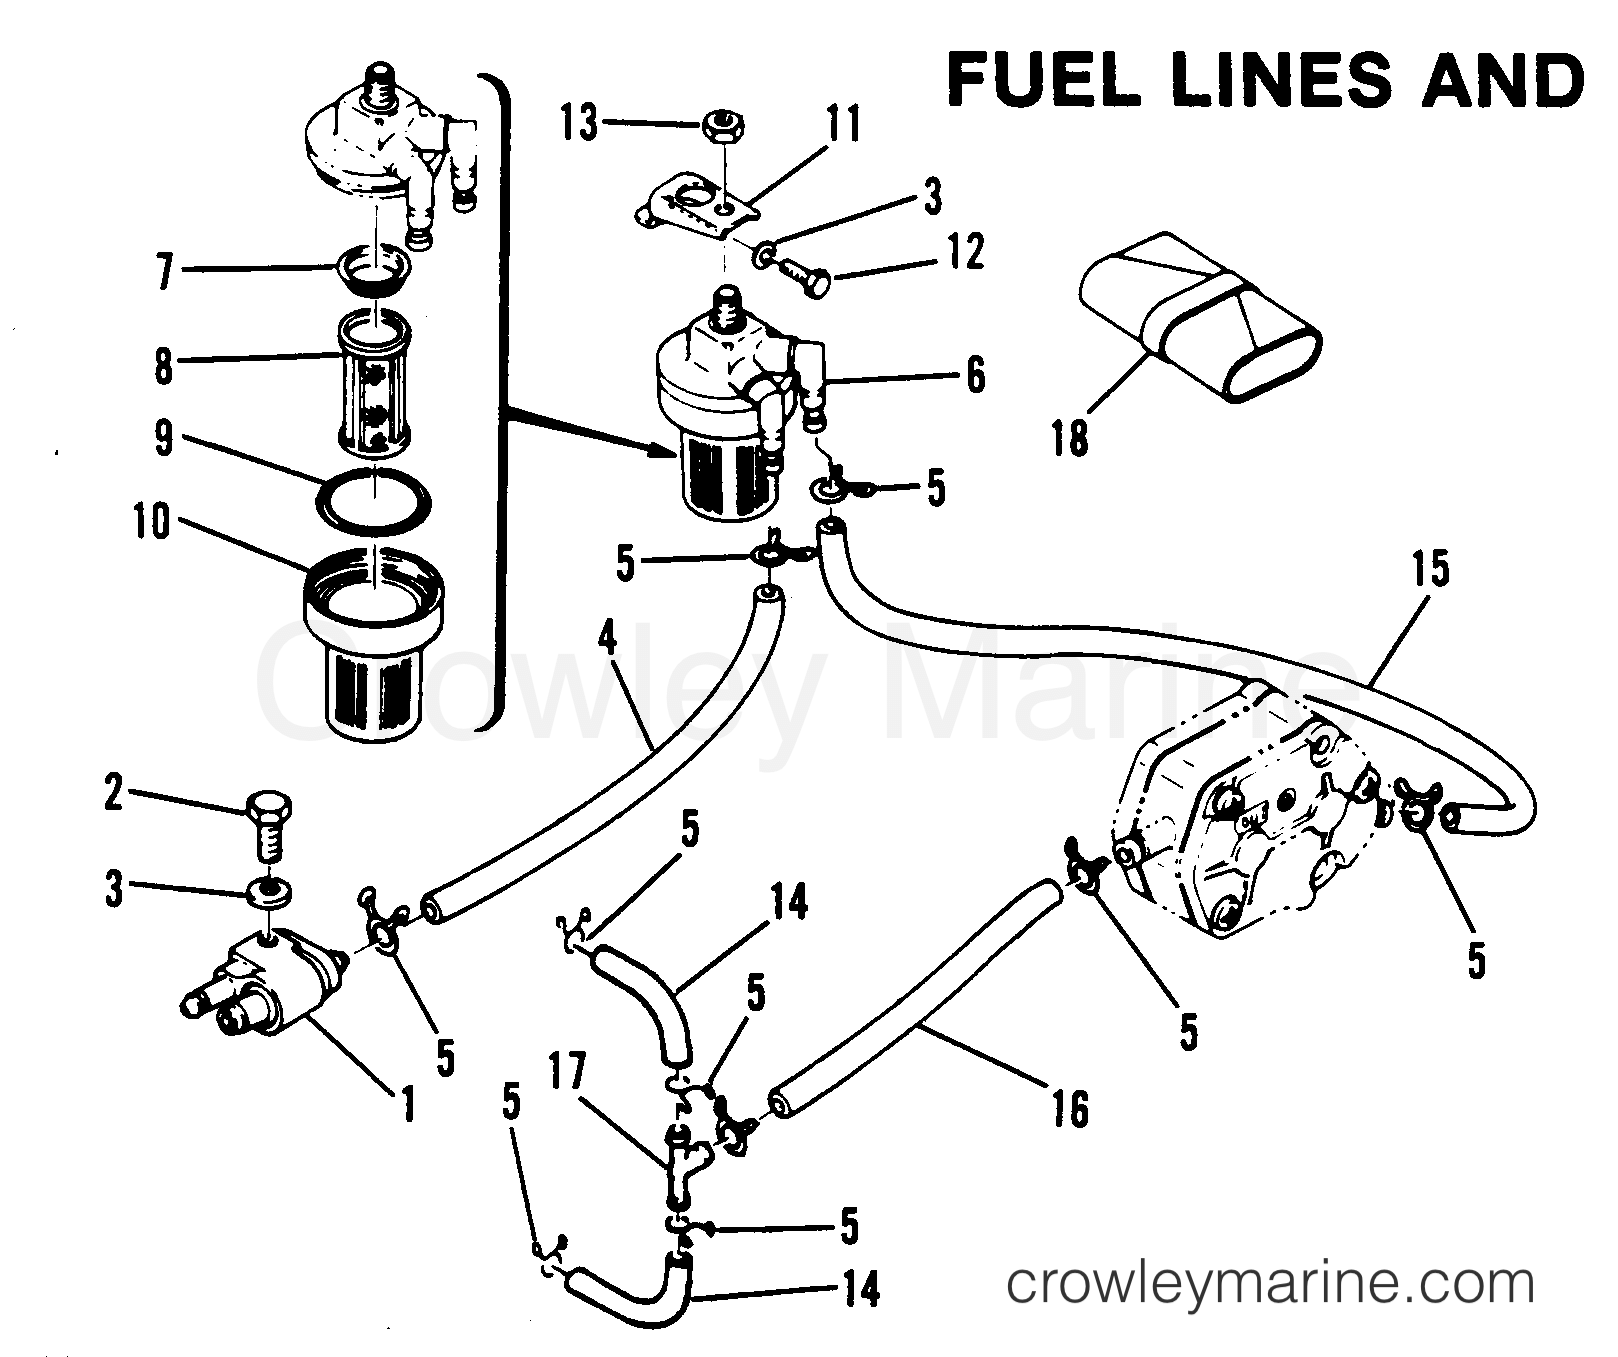 fuel lines and filter 1982 mariner outboard 40 el 7040522 rh crowleymarine com Mercury Marine Fuel Line Mercury Fuel Line Assembly